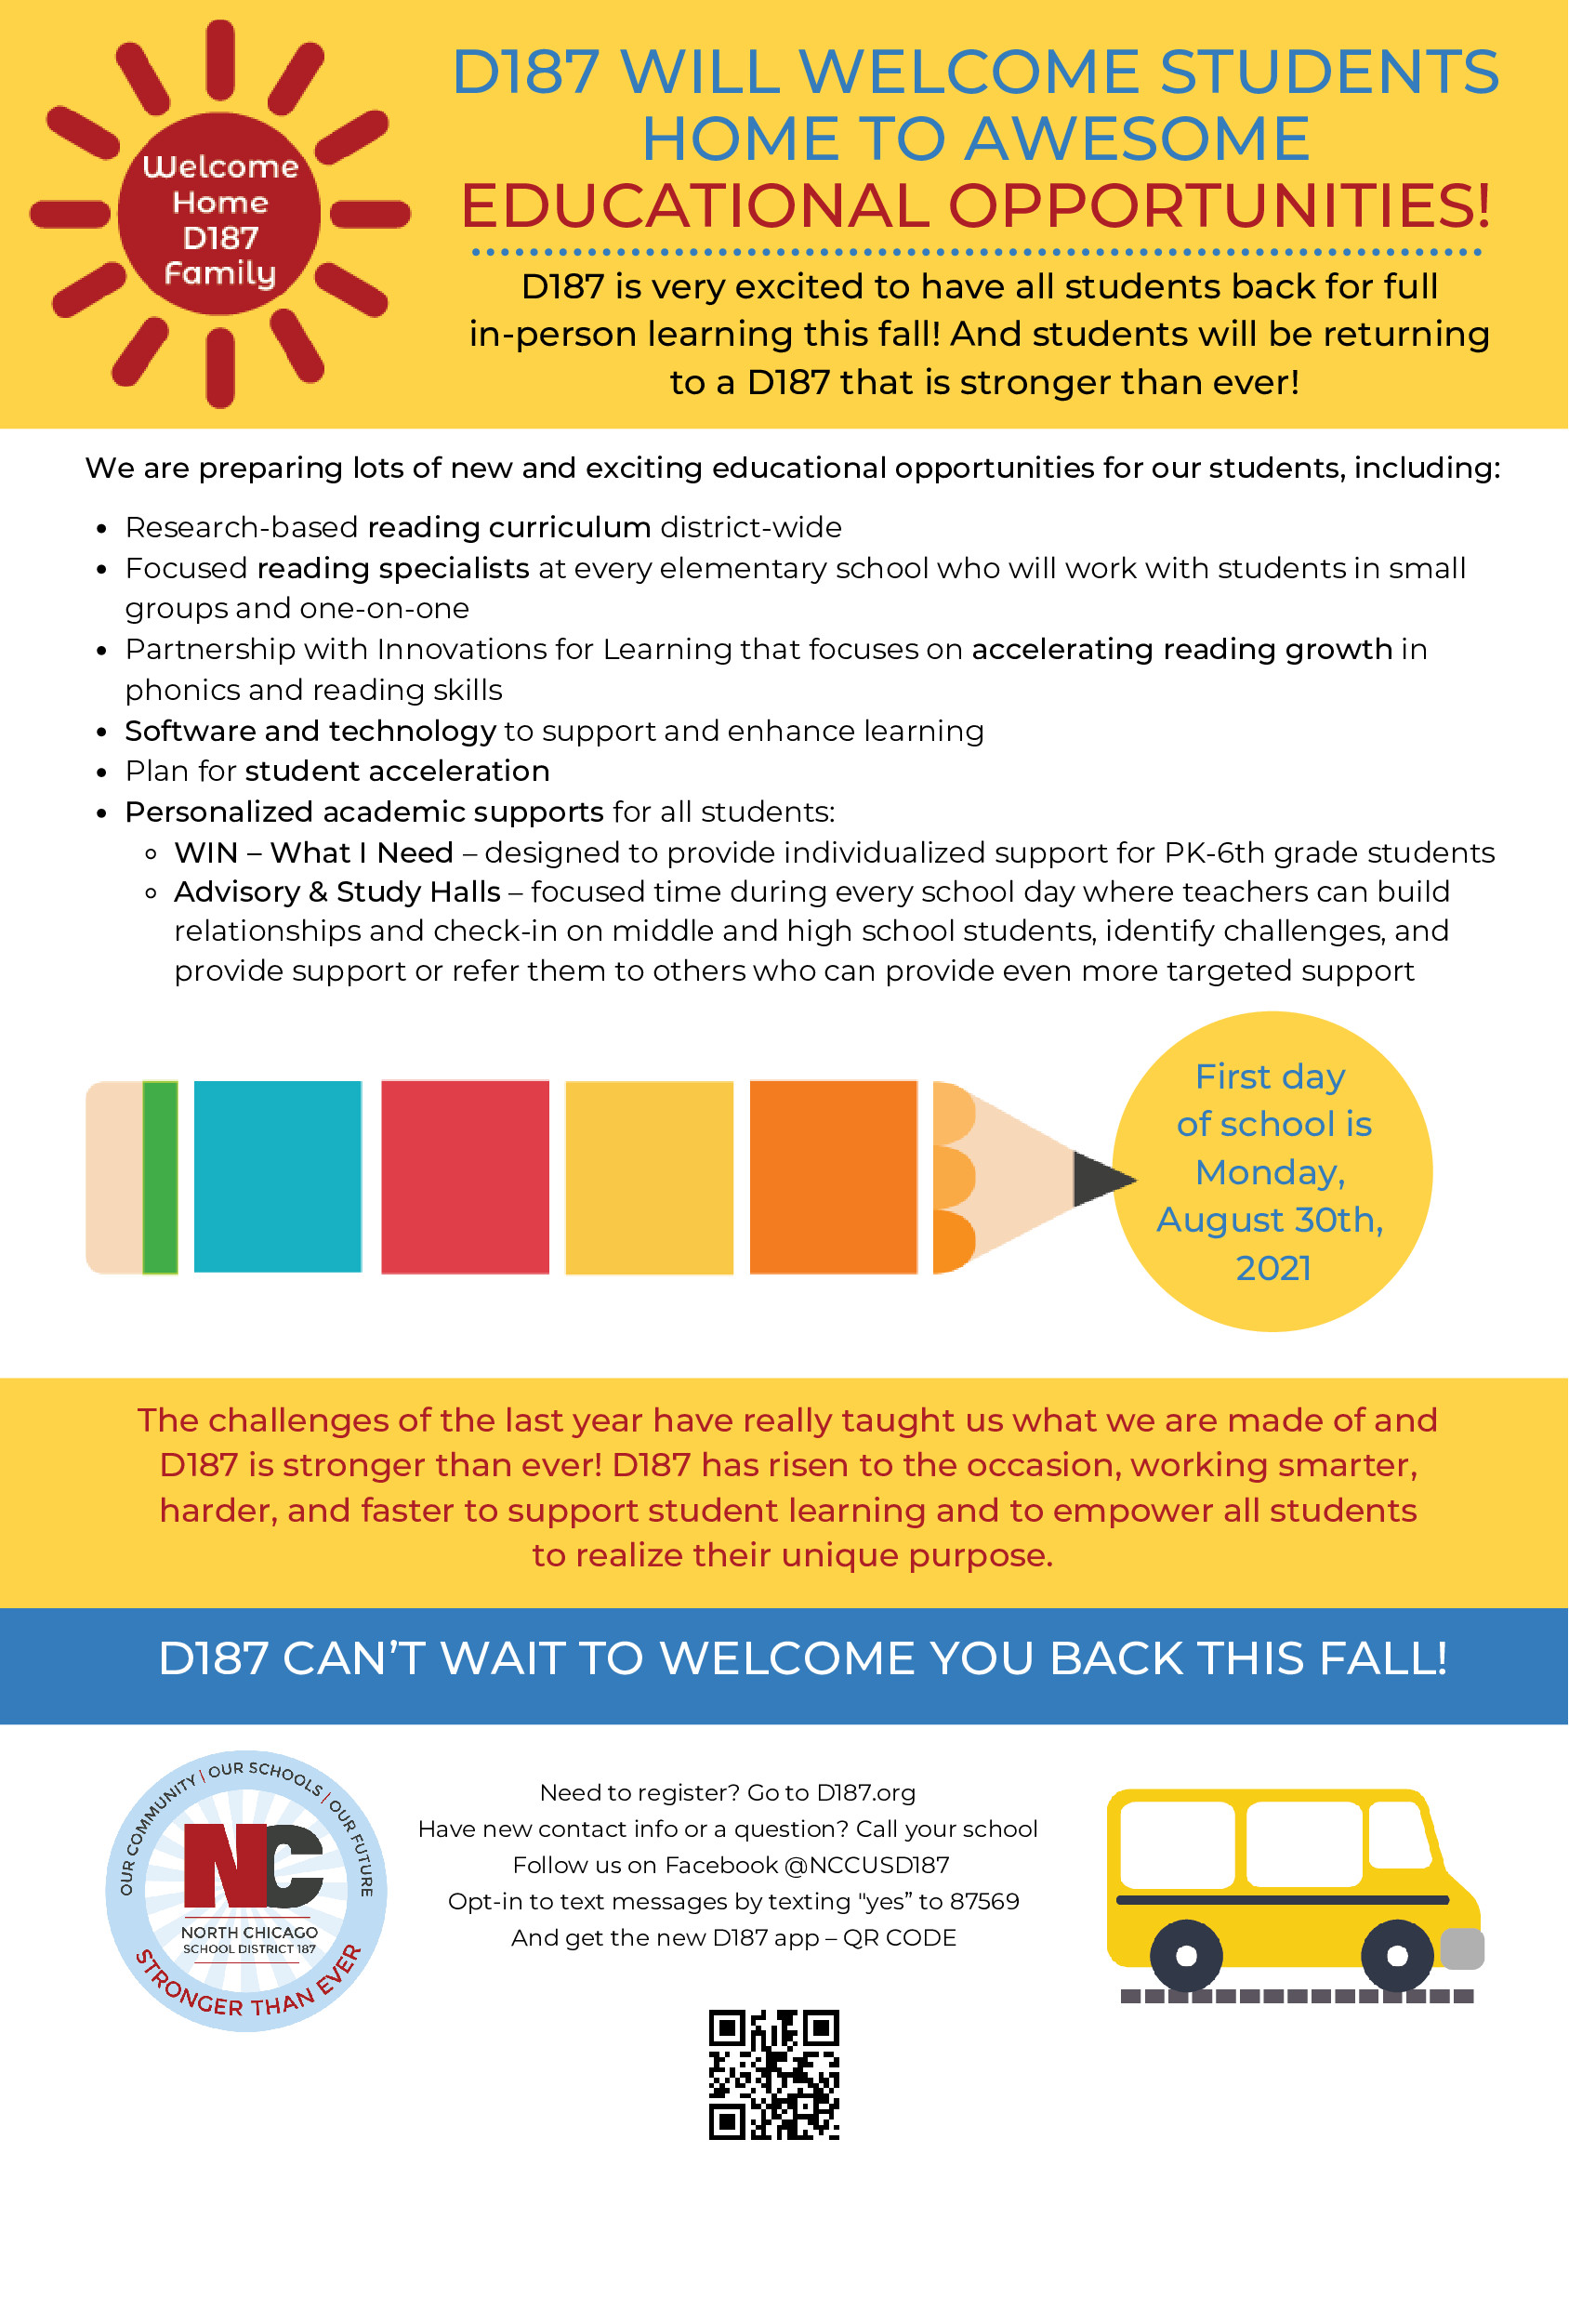 D187 WILL WELCOME STUDENTS  HOME TO AWESOME  EDUCATIONAL OPPORTUNITIES!